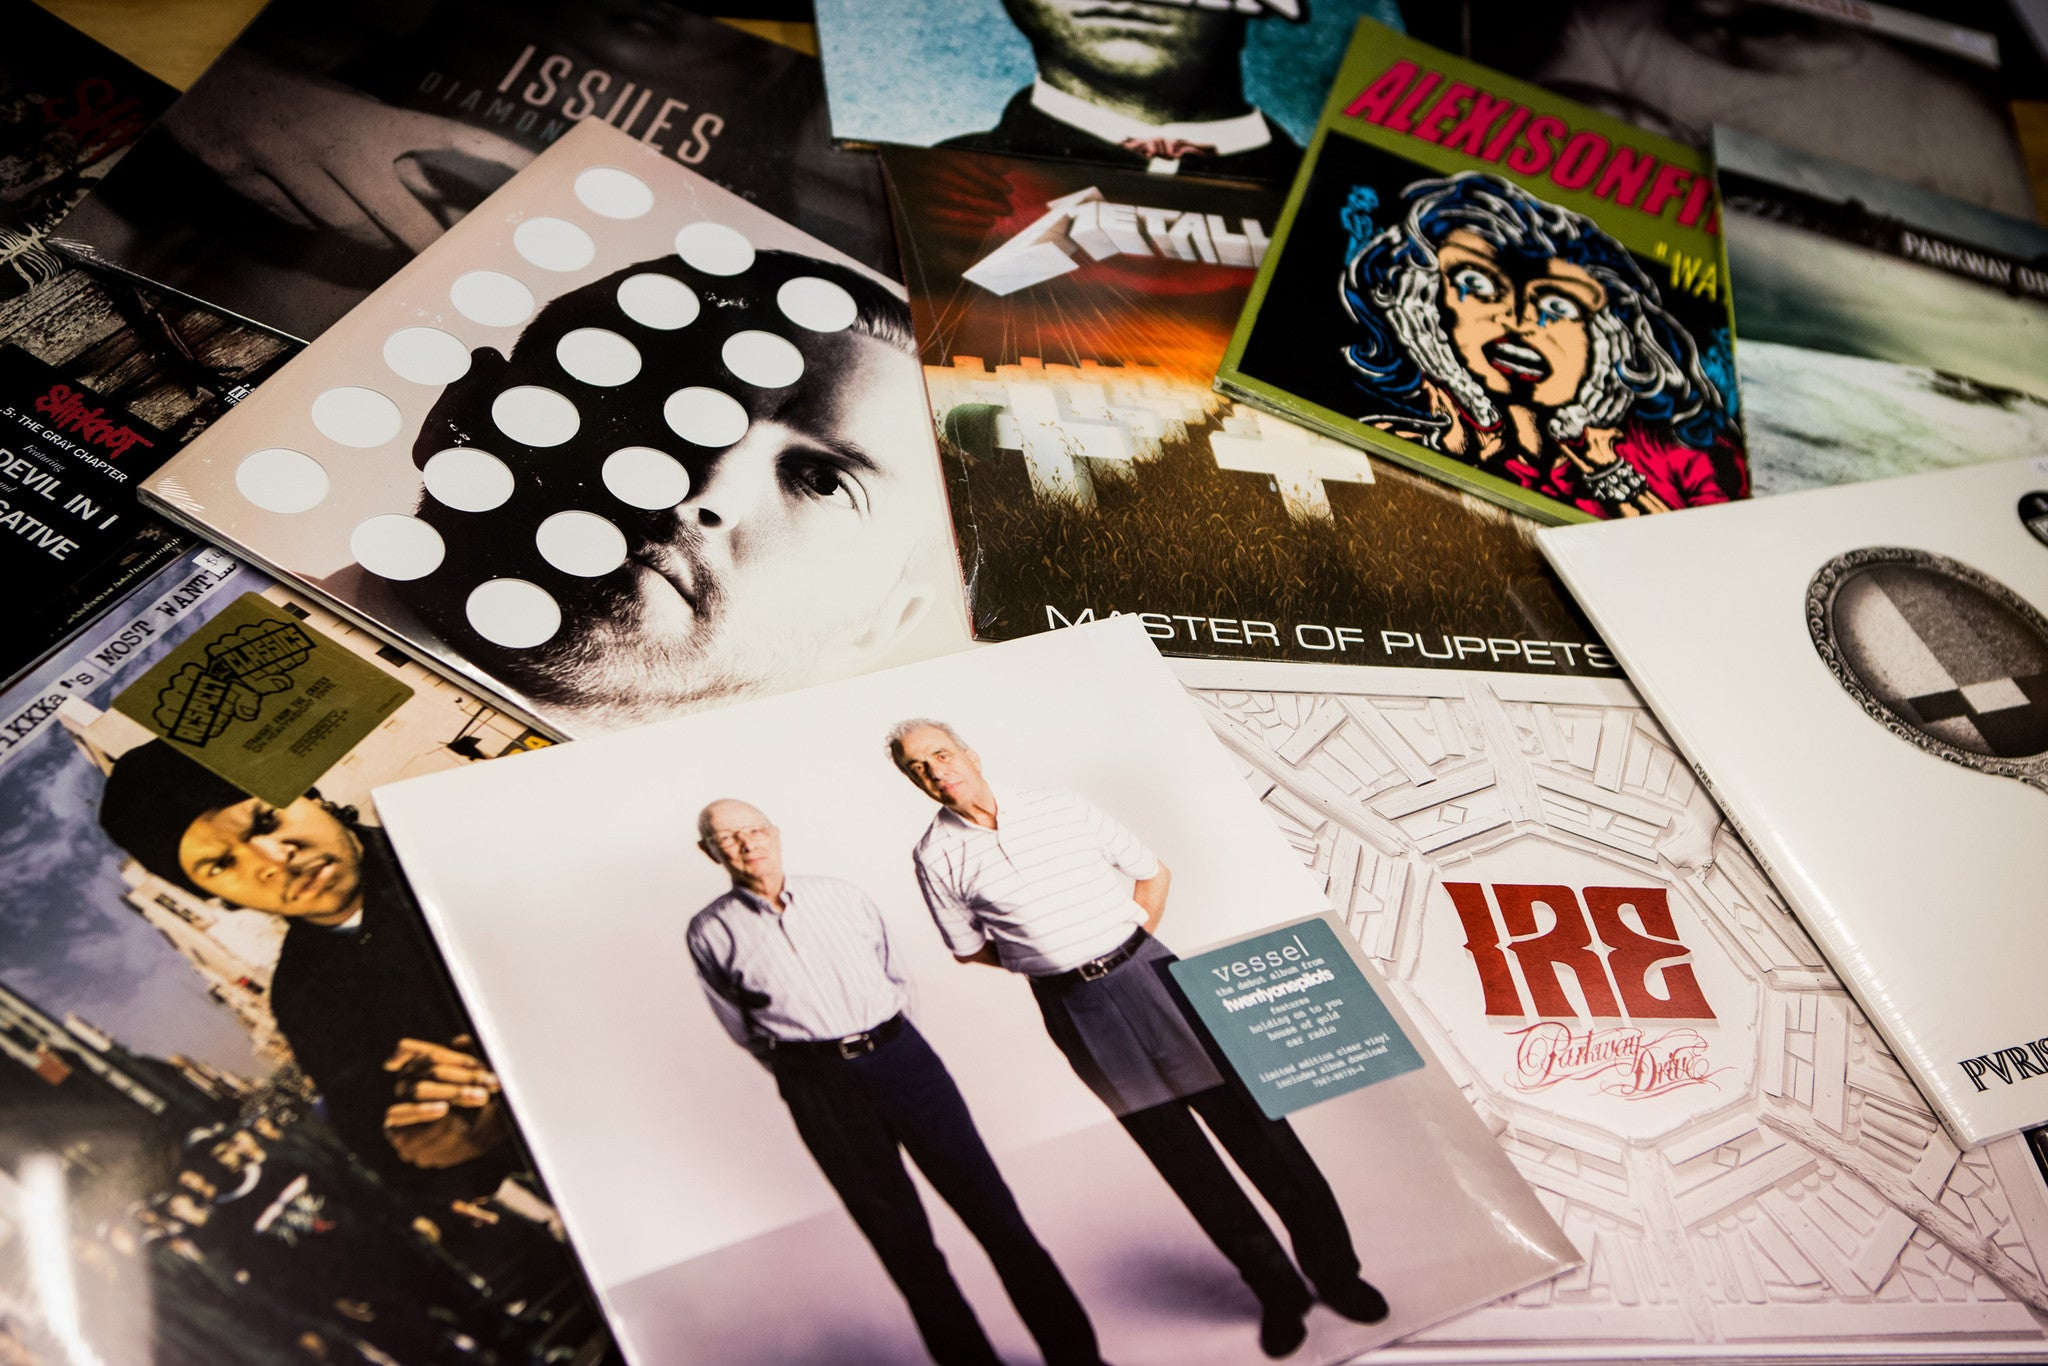 3 FUN FACTS ABOUT YOUR FAVOURITE VINYL